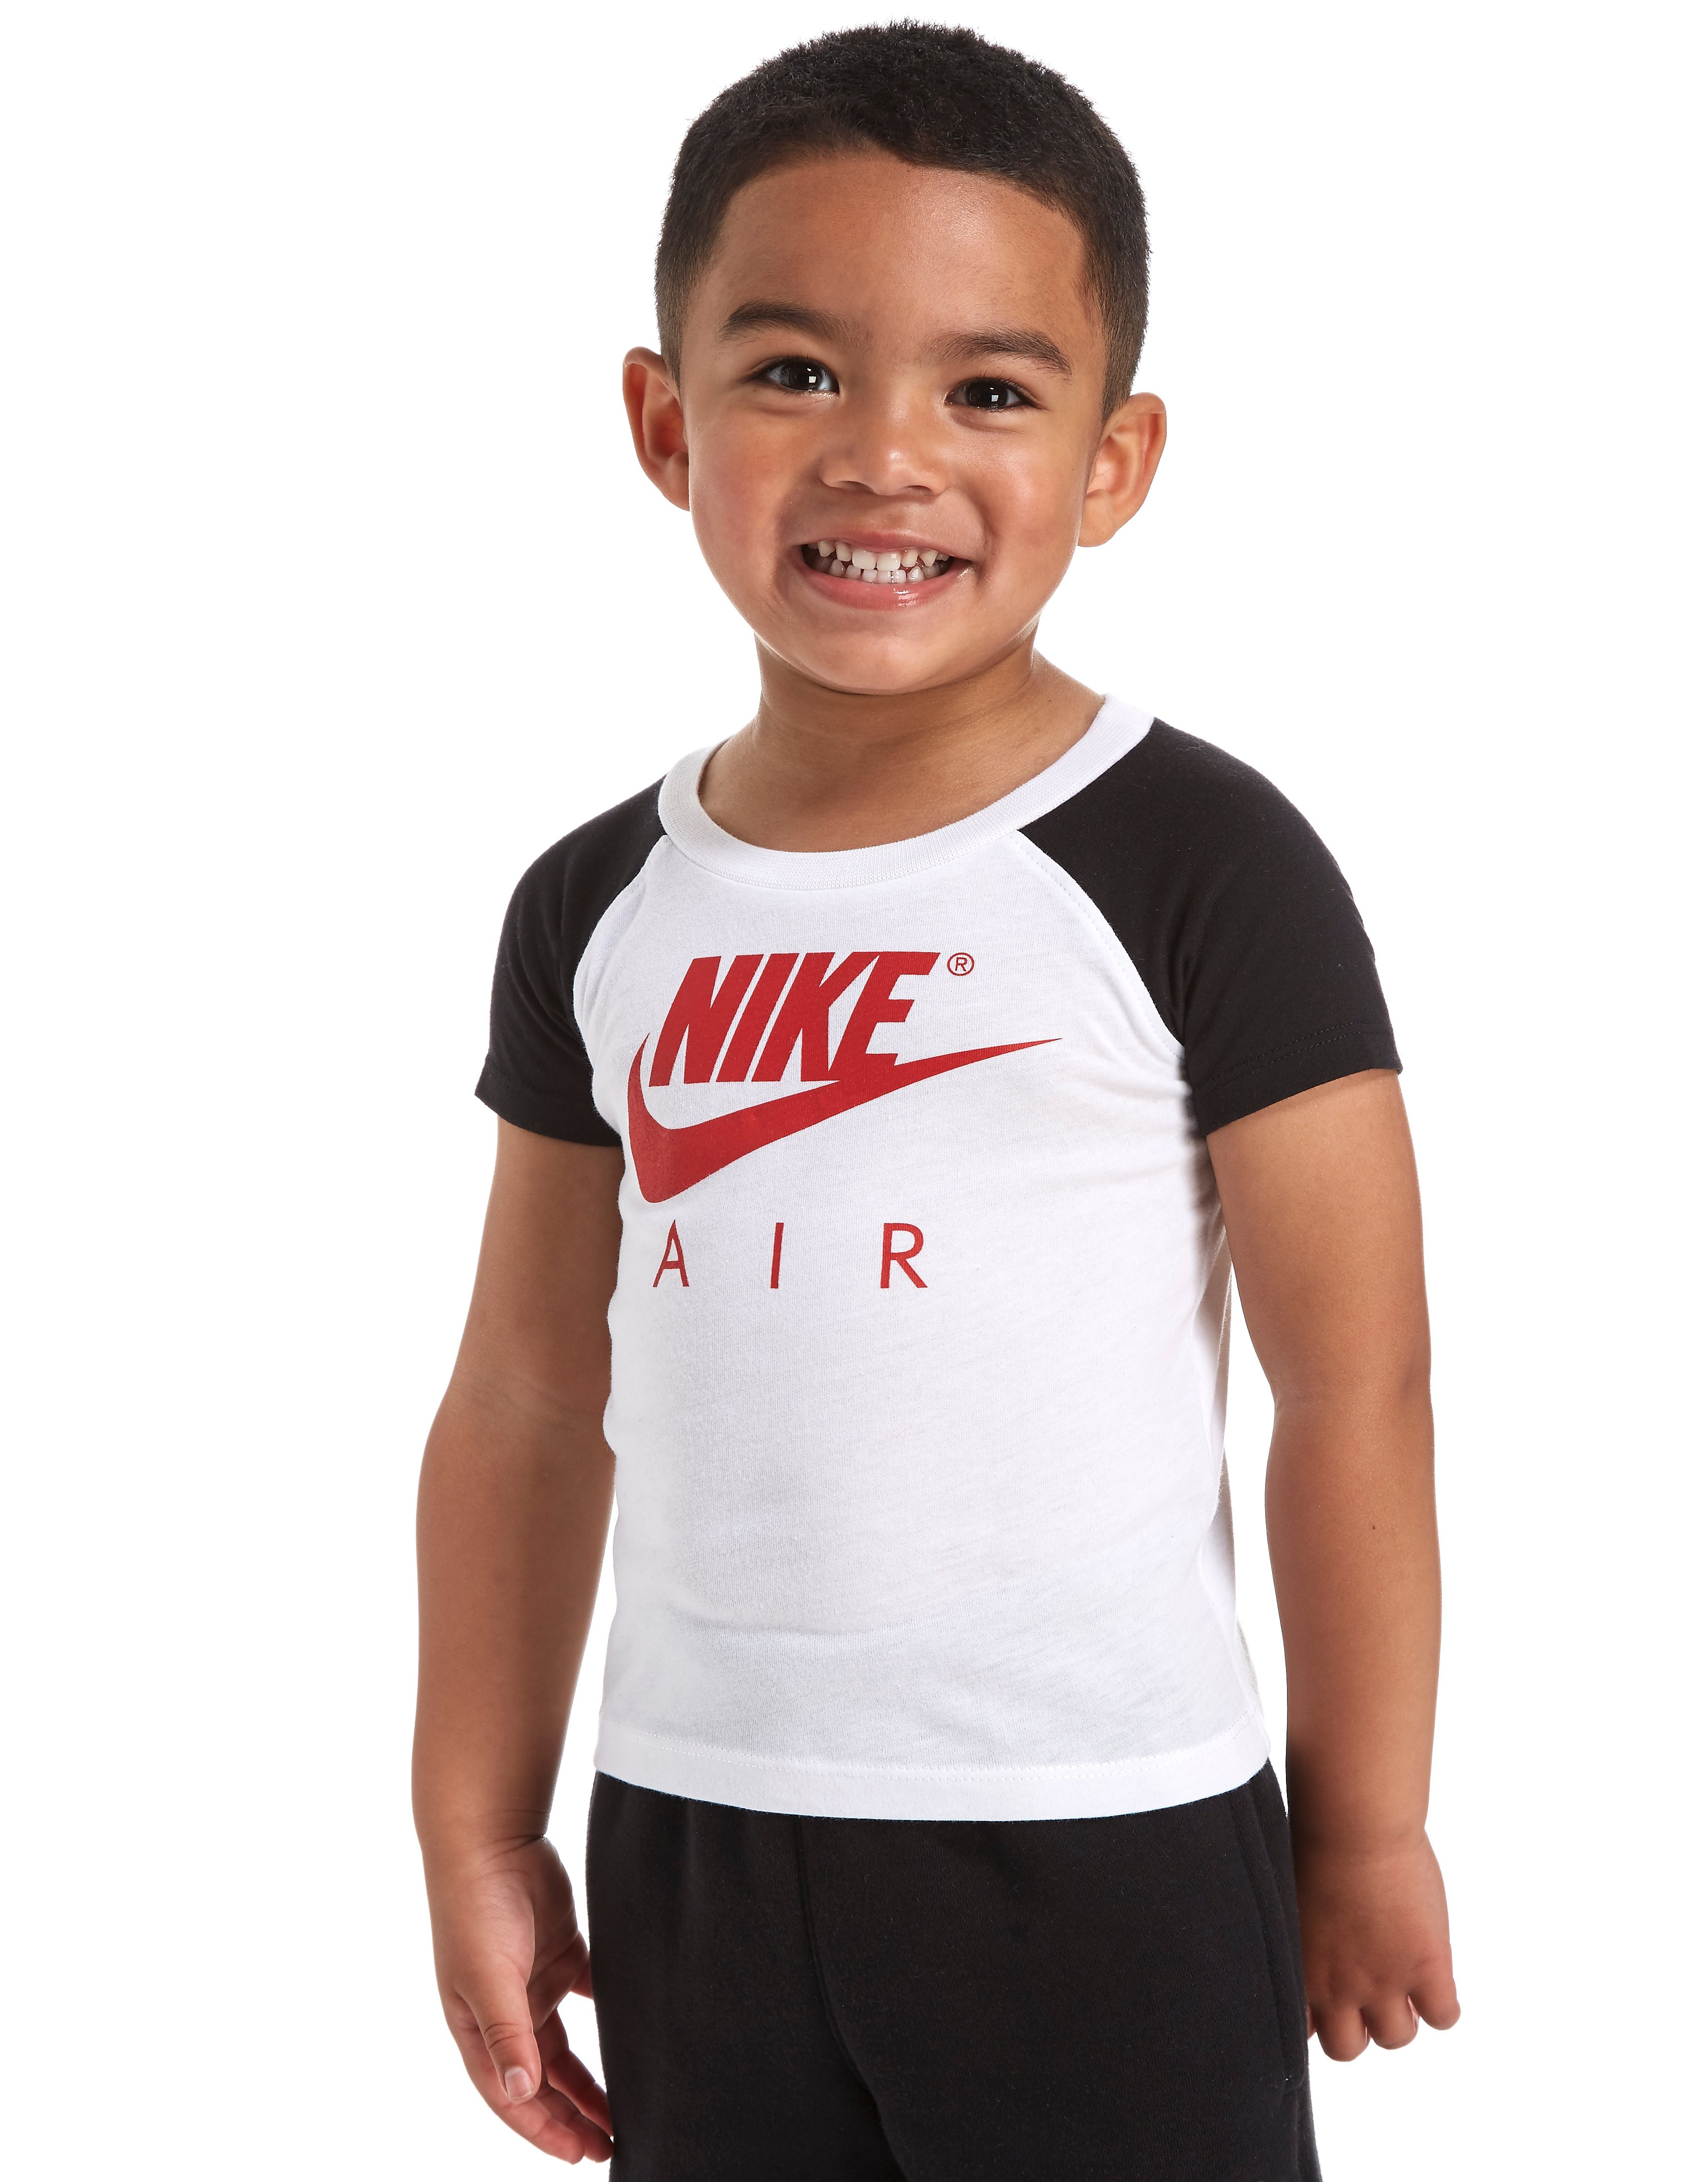 Nike Air Colour Block T-Shirt Infant